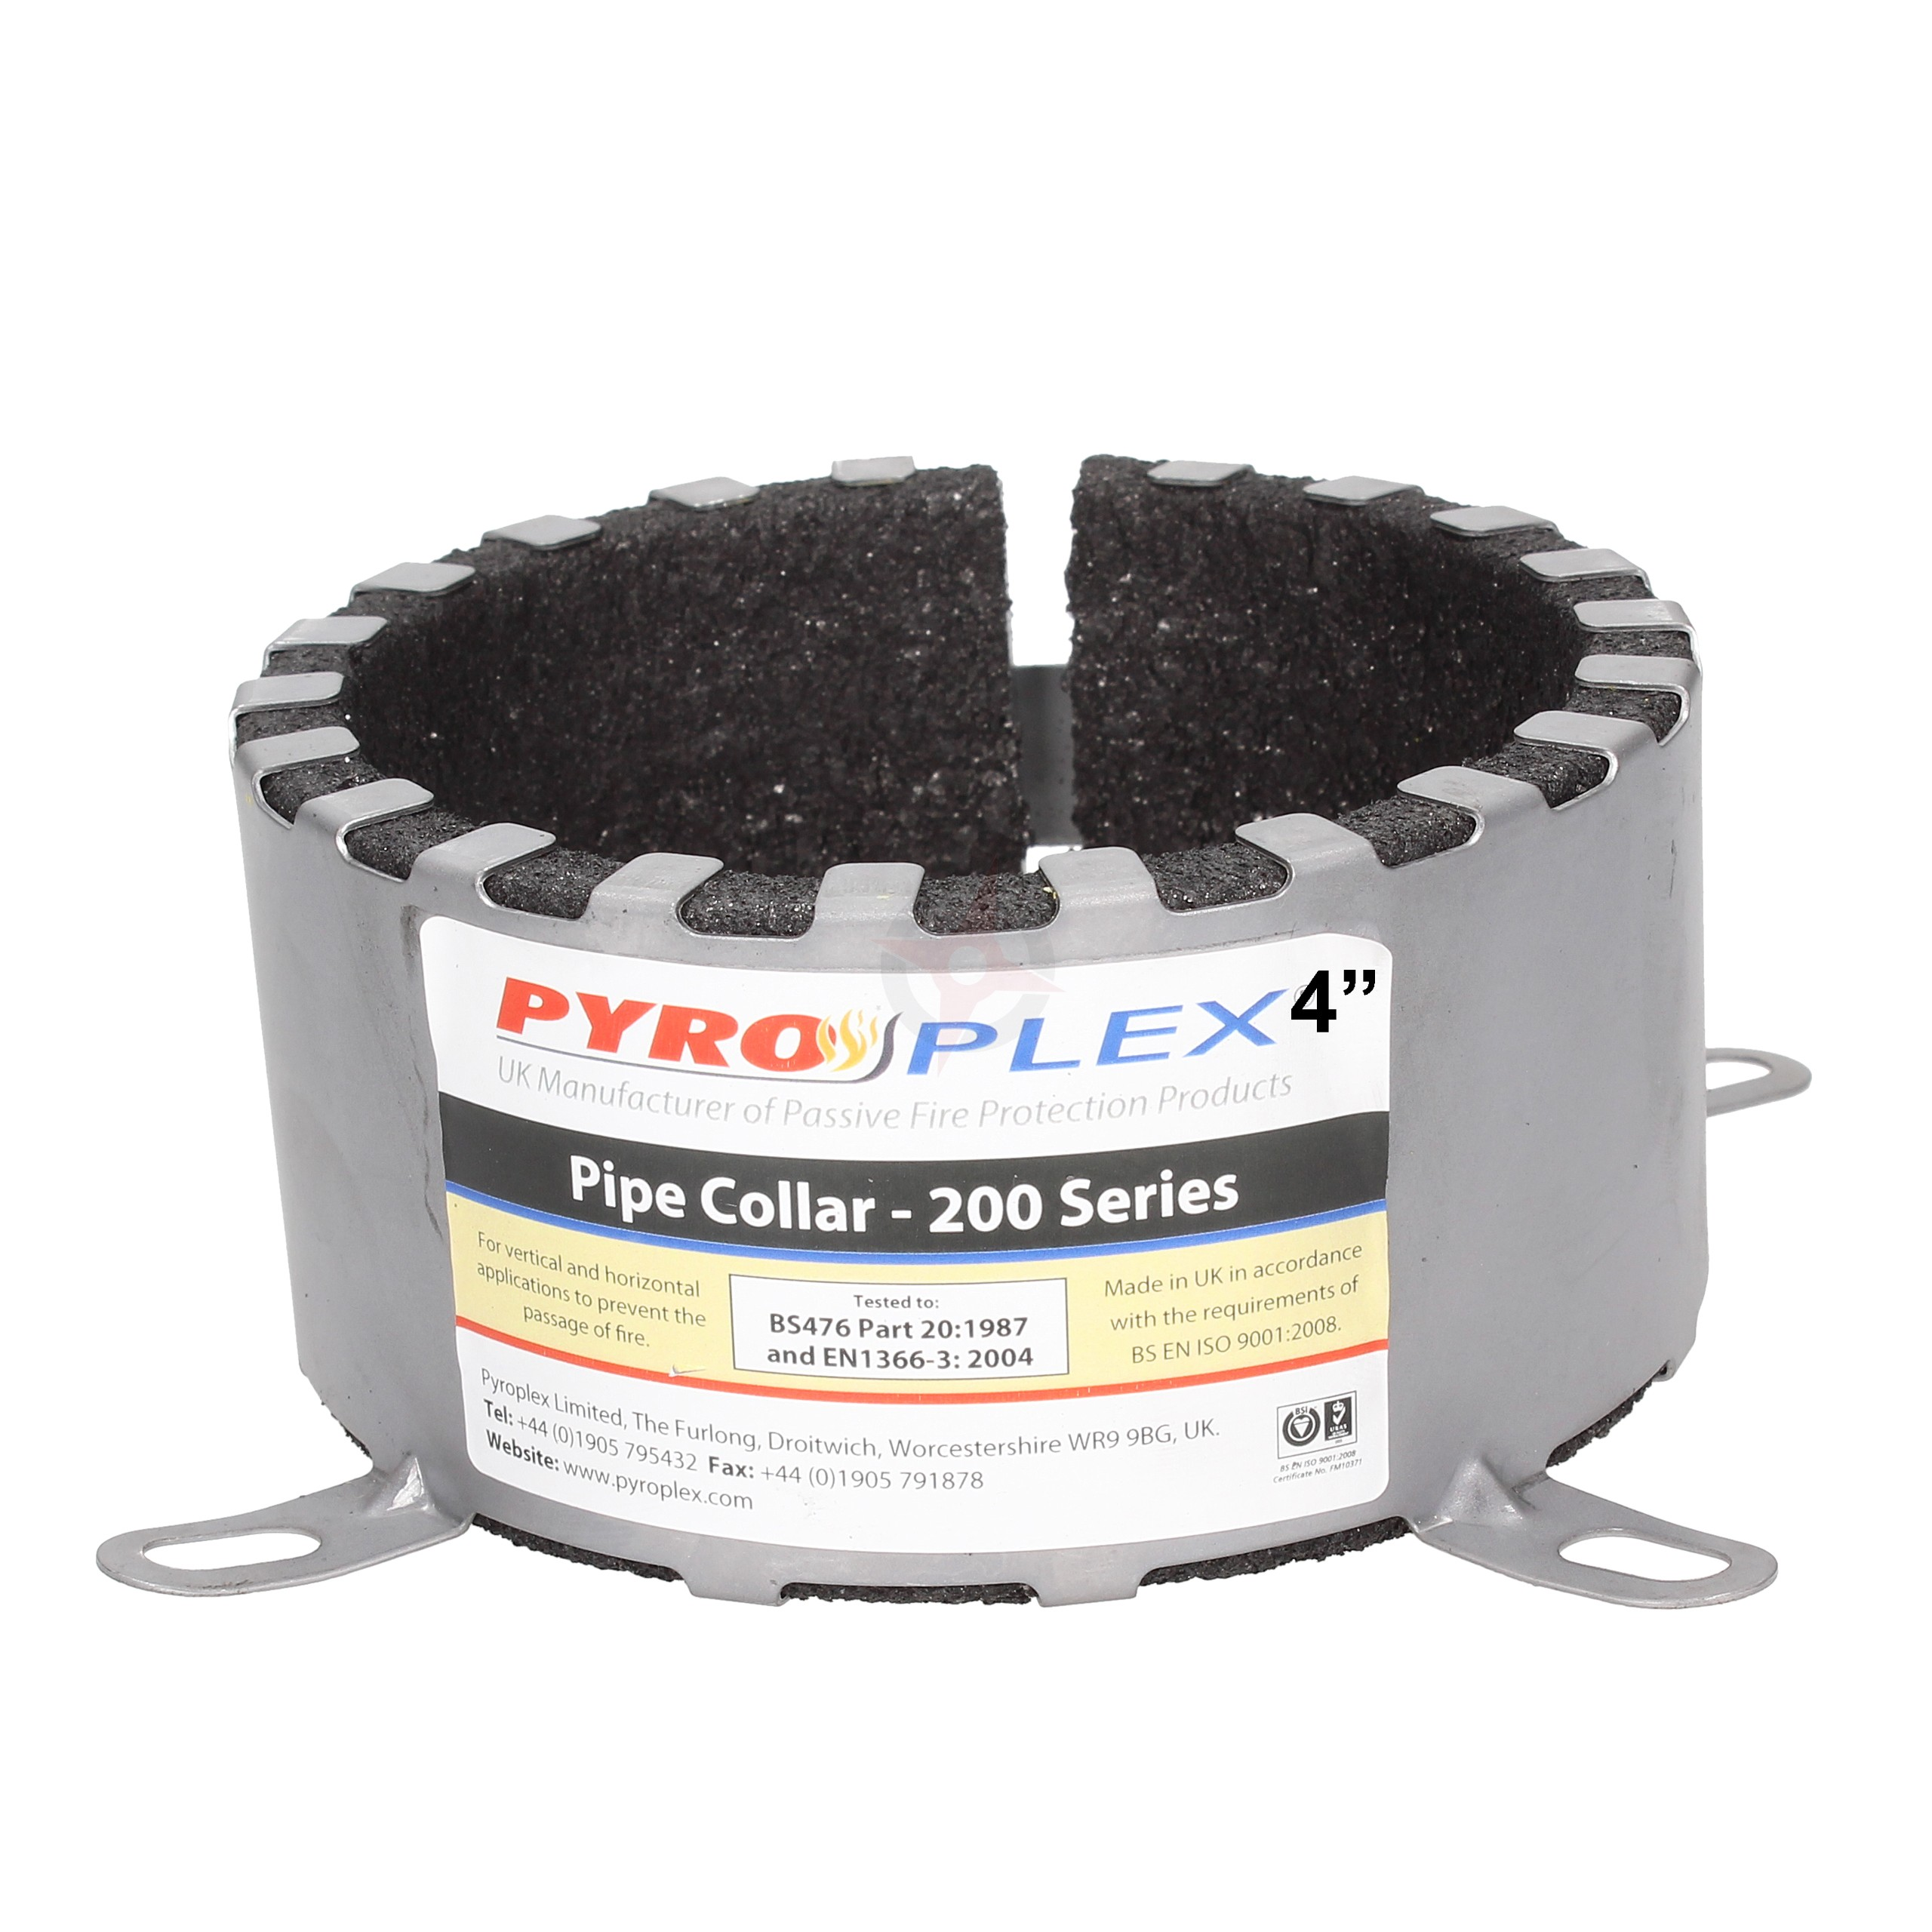 "Pyroplex 200 Series 4"" Fire Collar"